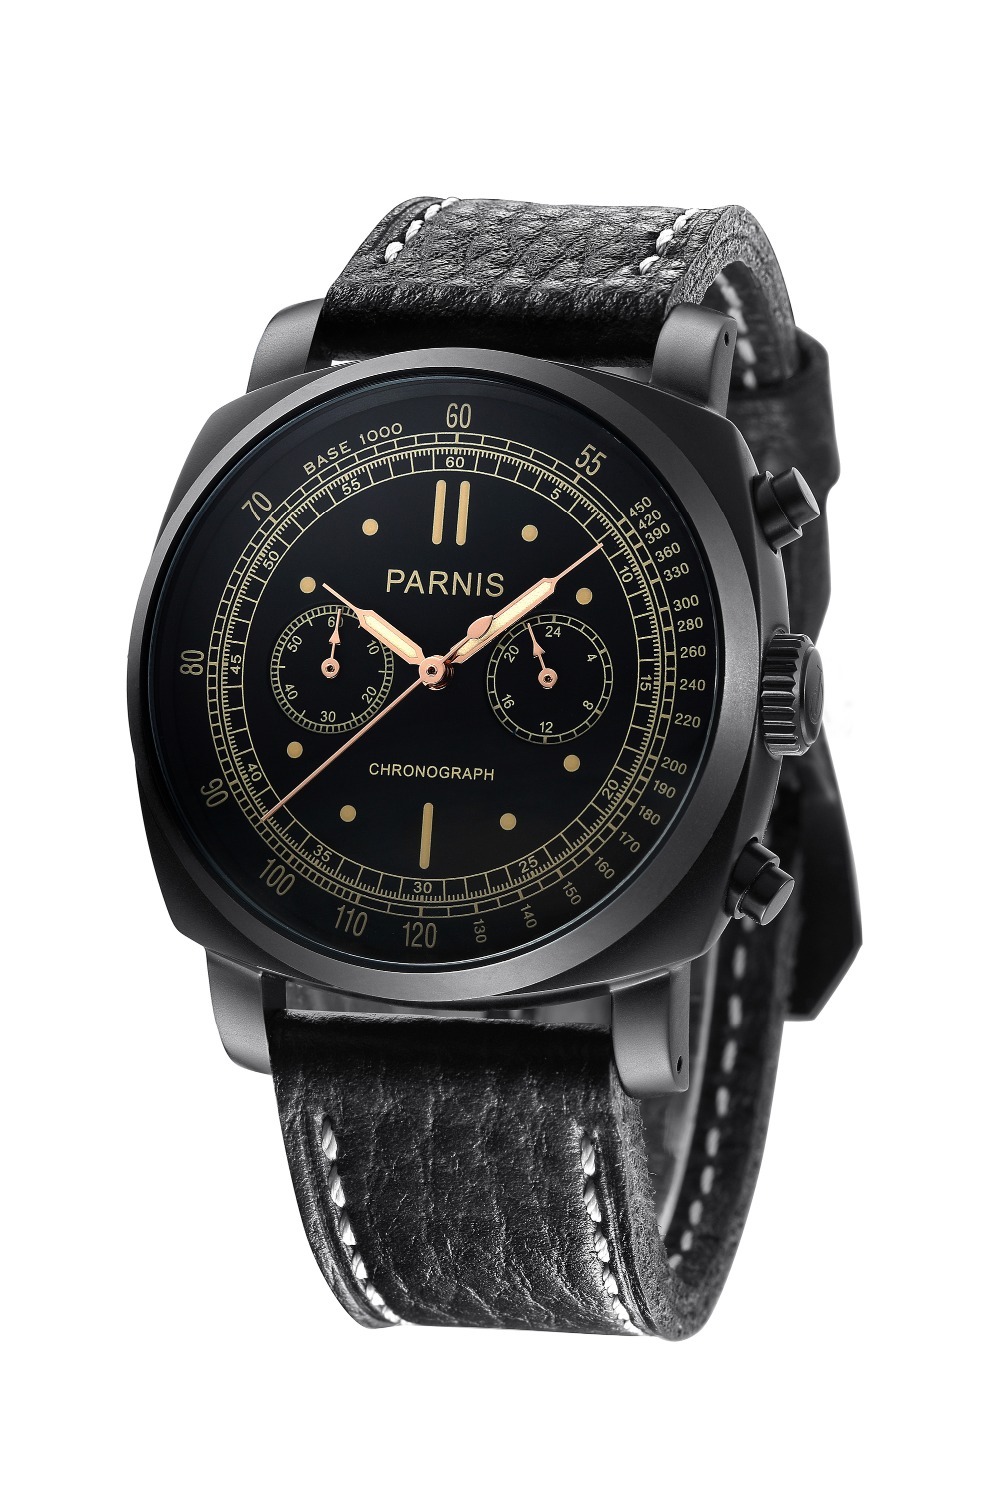 Parnis 45mm Black Dial PVD Case Chronograph Men s Watch